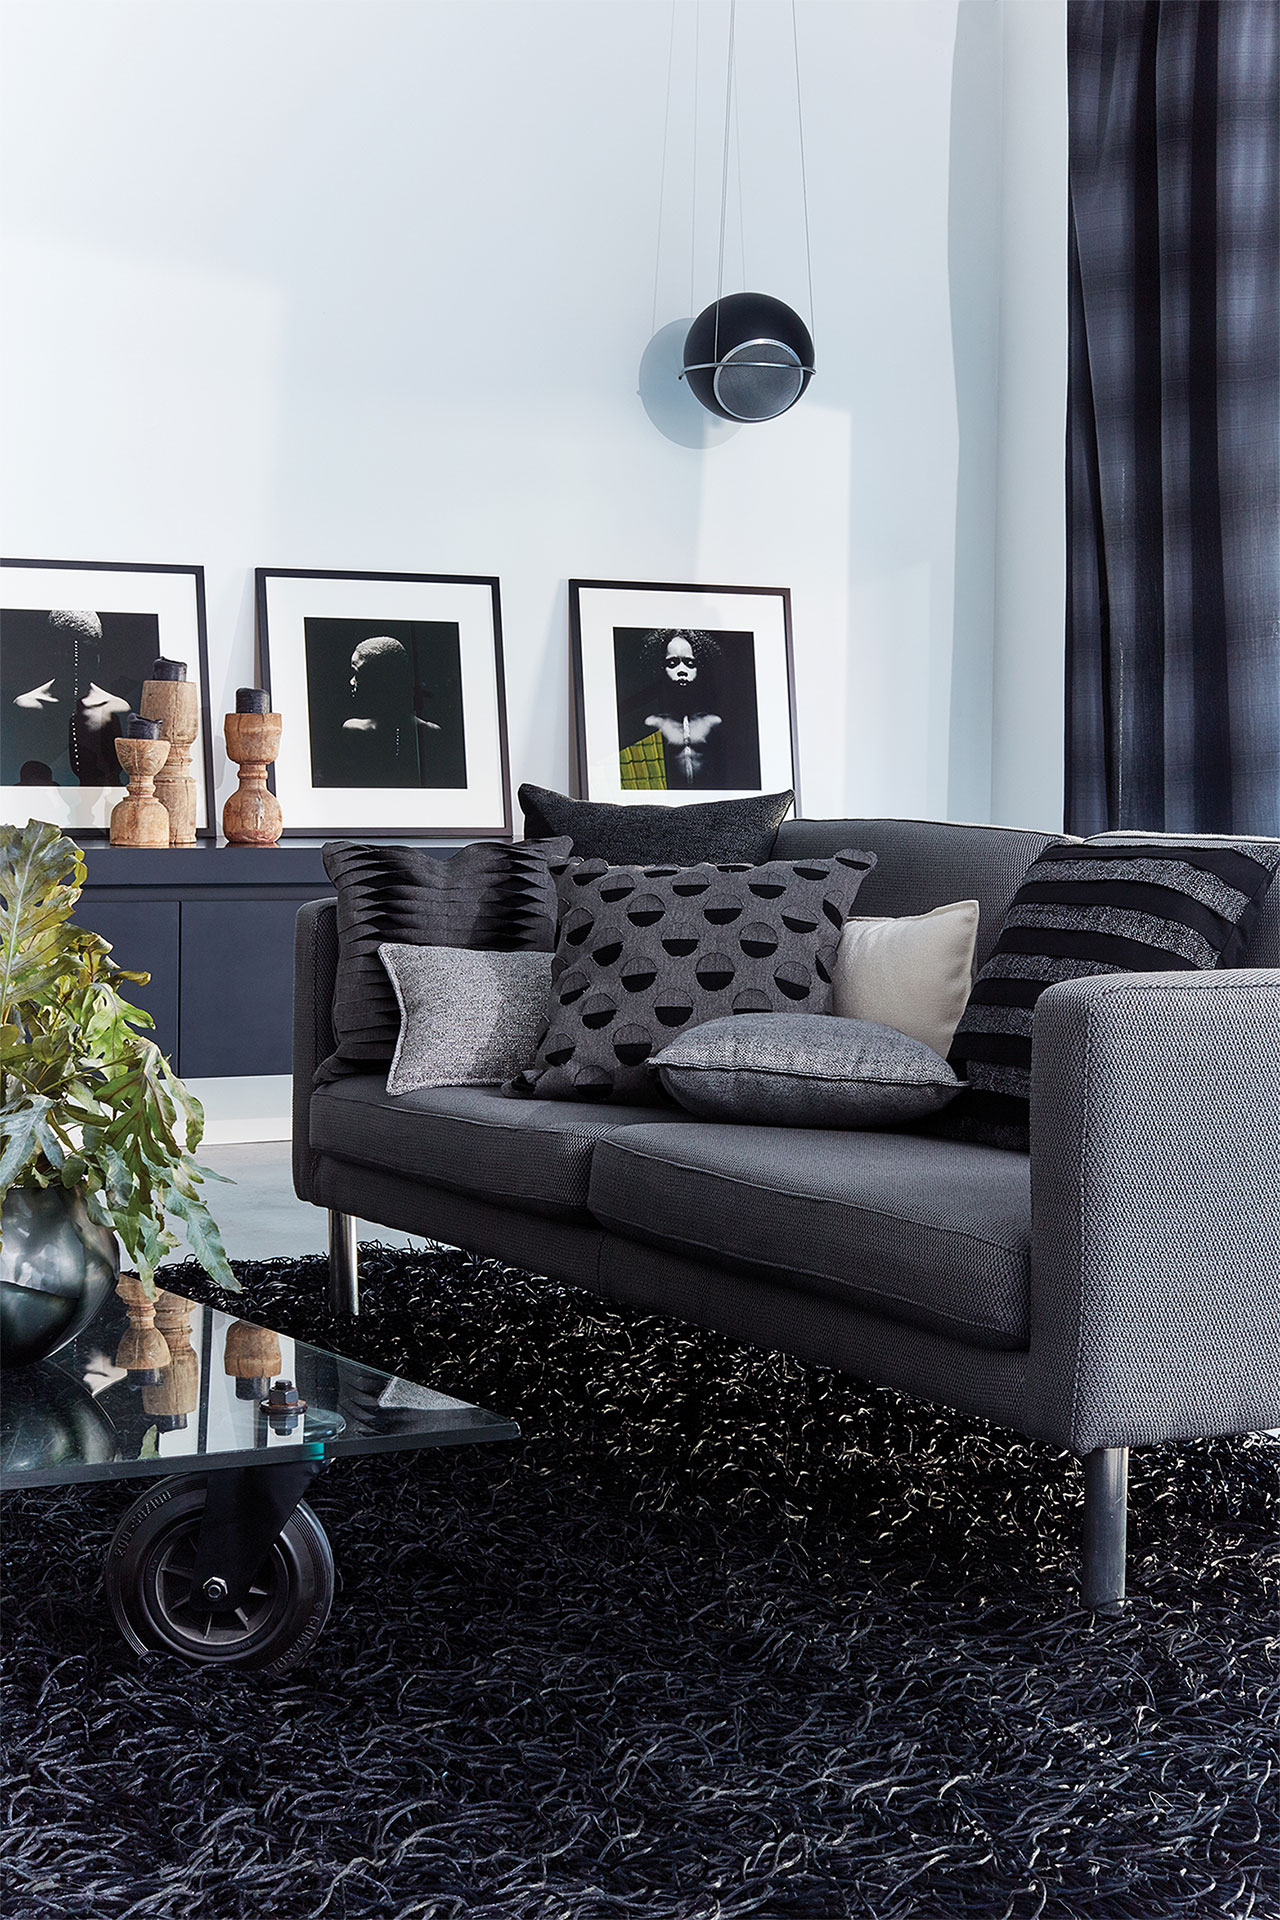 A living room is decorated in shades of black and white, with a grey sofa made with Sunbrella fabric in the center.